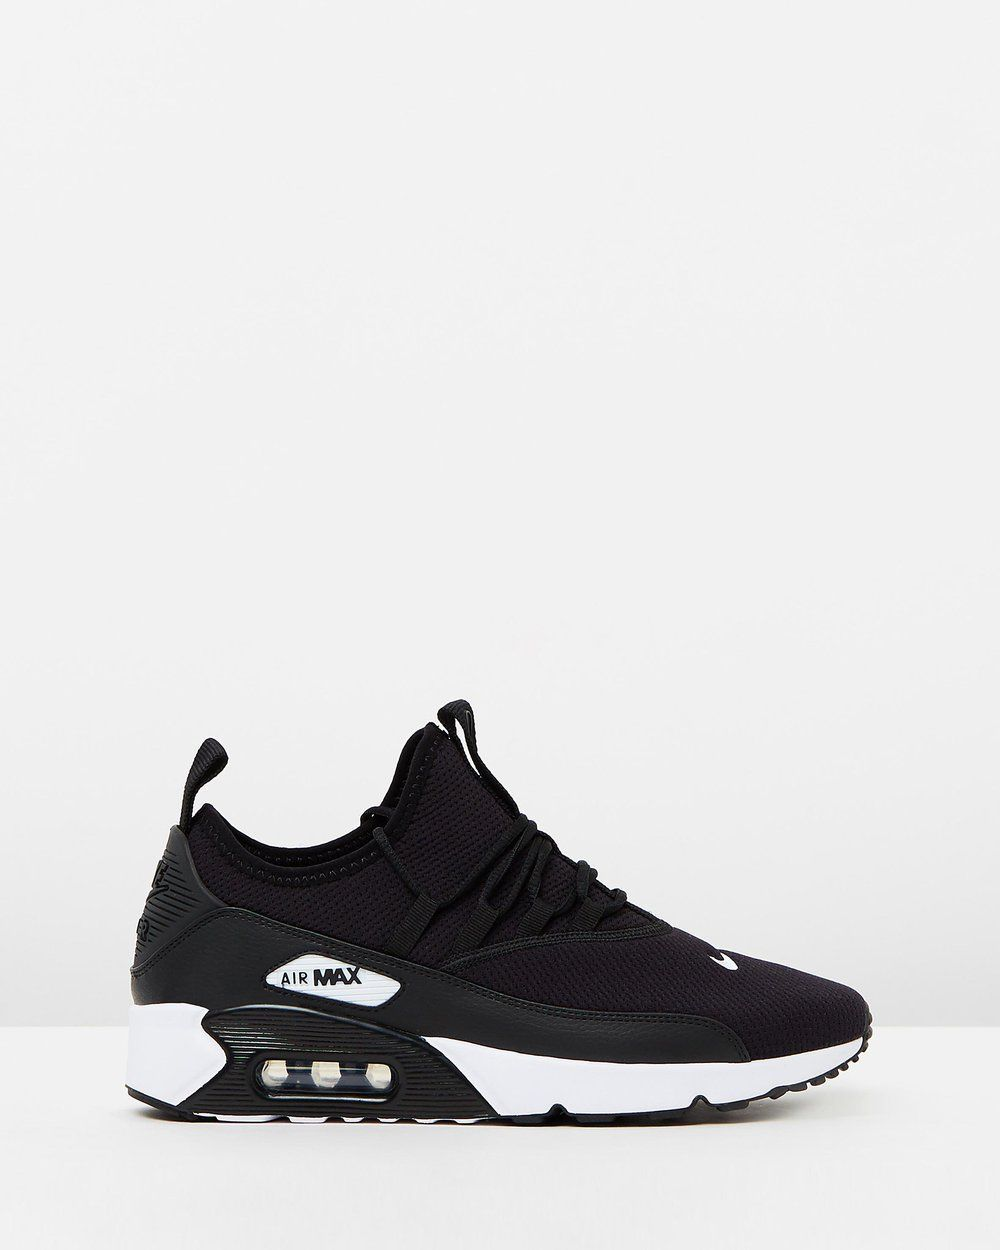 buy online 3f582 c44c0 Buy Nike Air Max 90 EZ - Womens by Nike online at THE ICONIC. Free and fast  delivery to Australia and New Zealand.